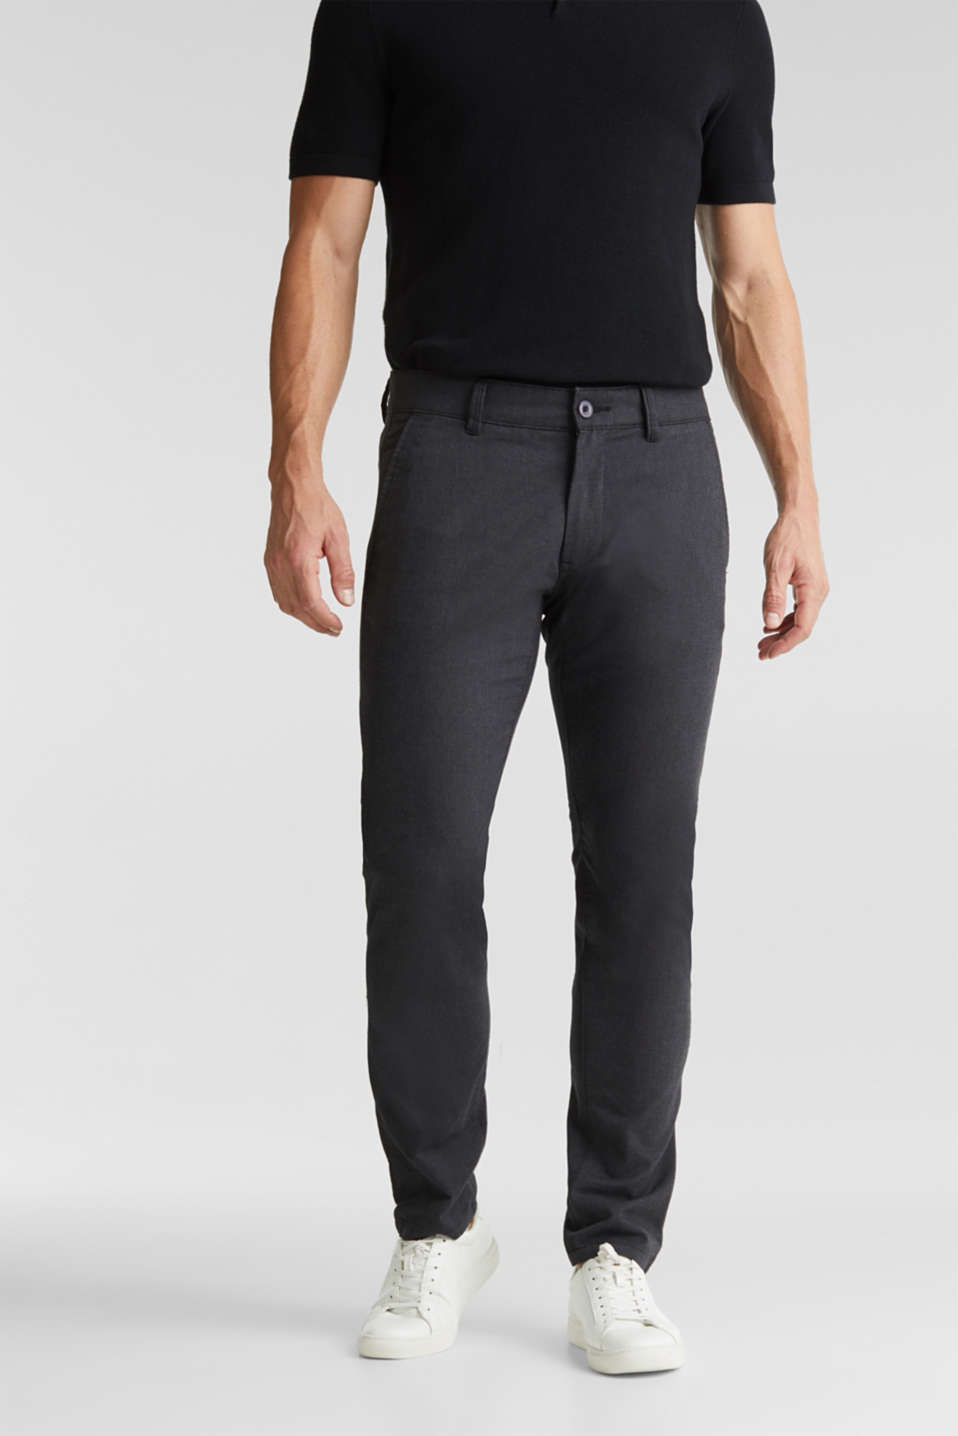 Esprit - Brushed Pants mit Struktur